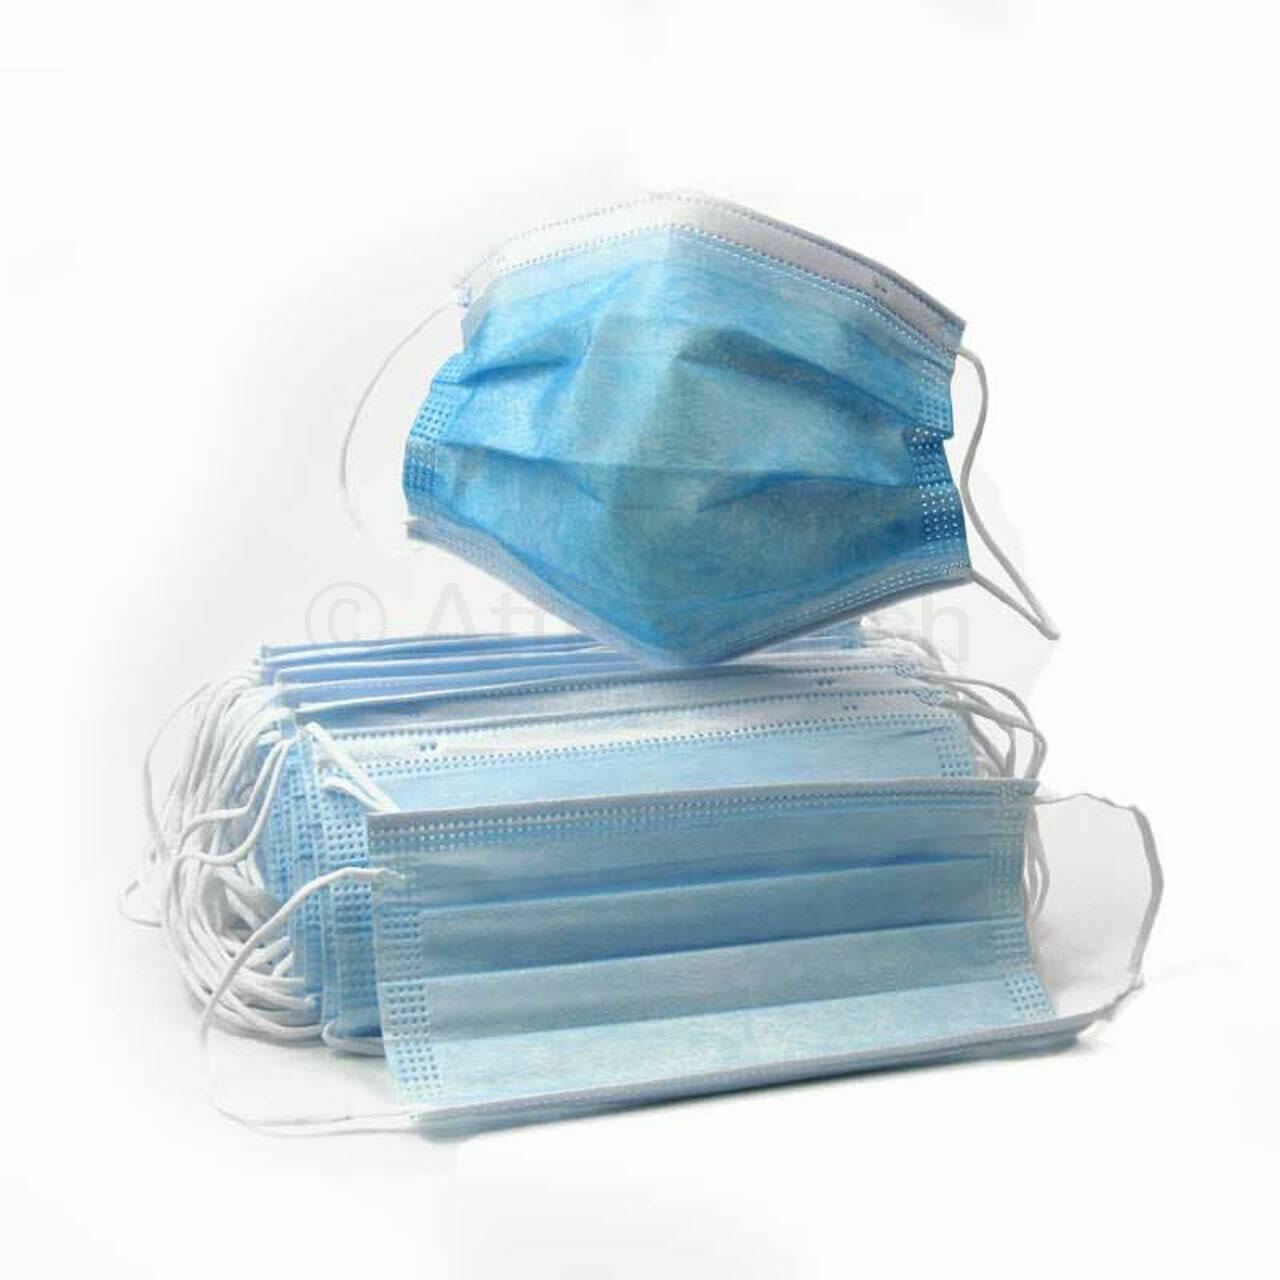 3-Ply Disposable Face Masks (50pcs/box)